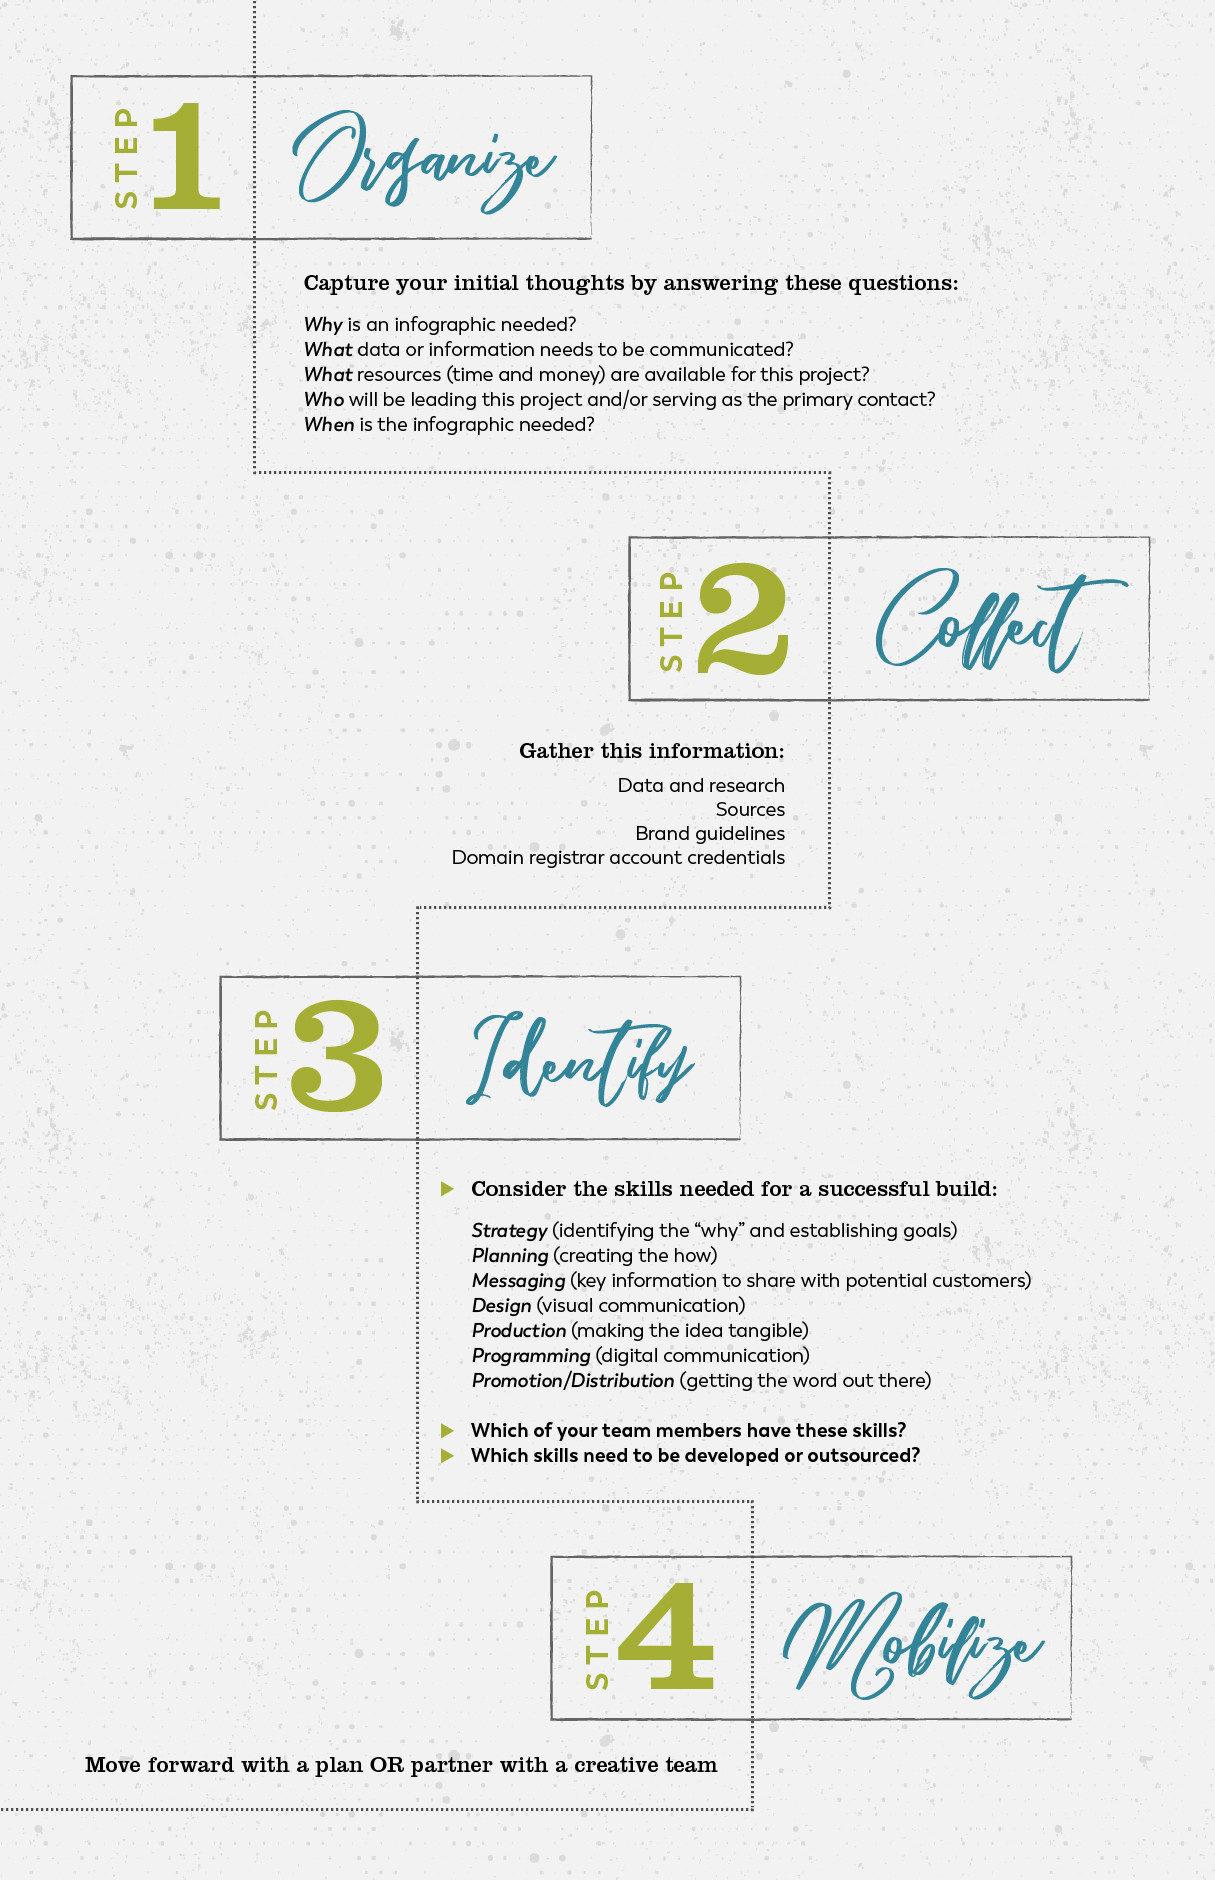 Getting Started with an Infographic by 237 Marketing + Web